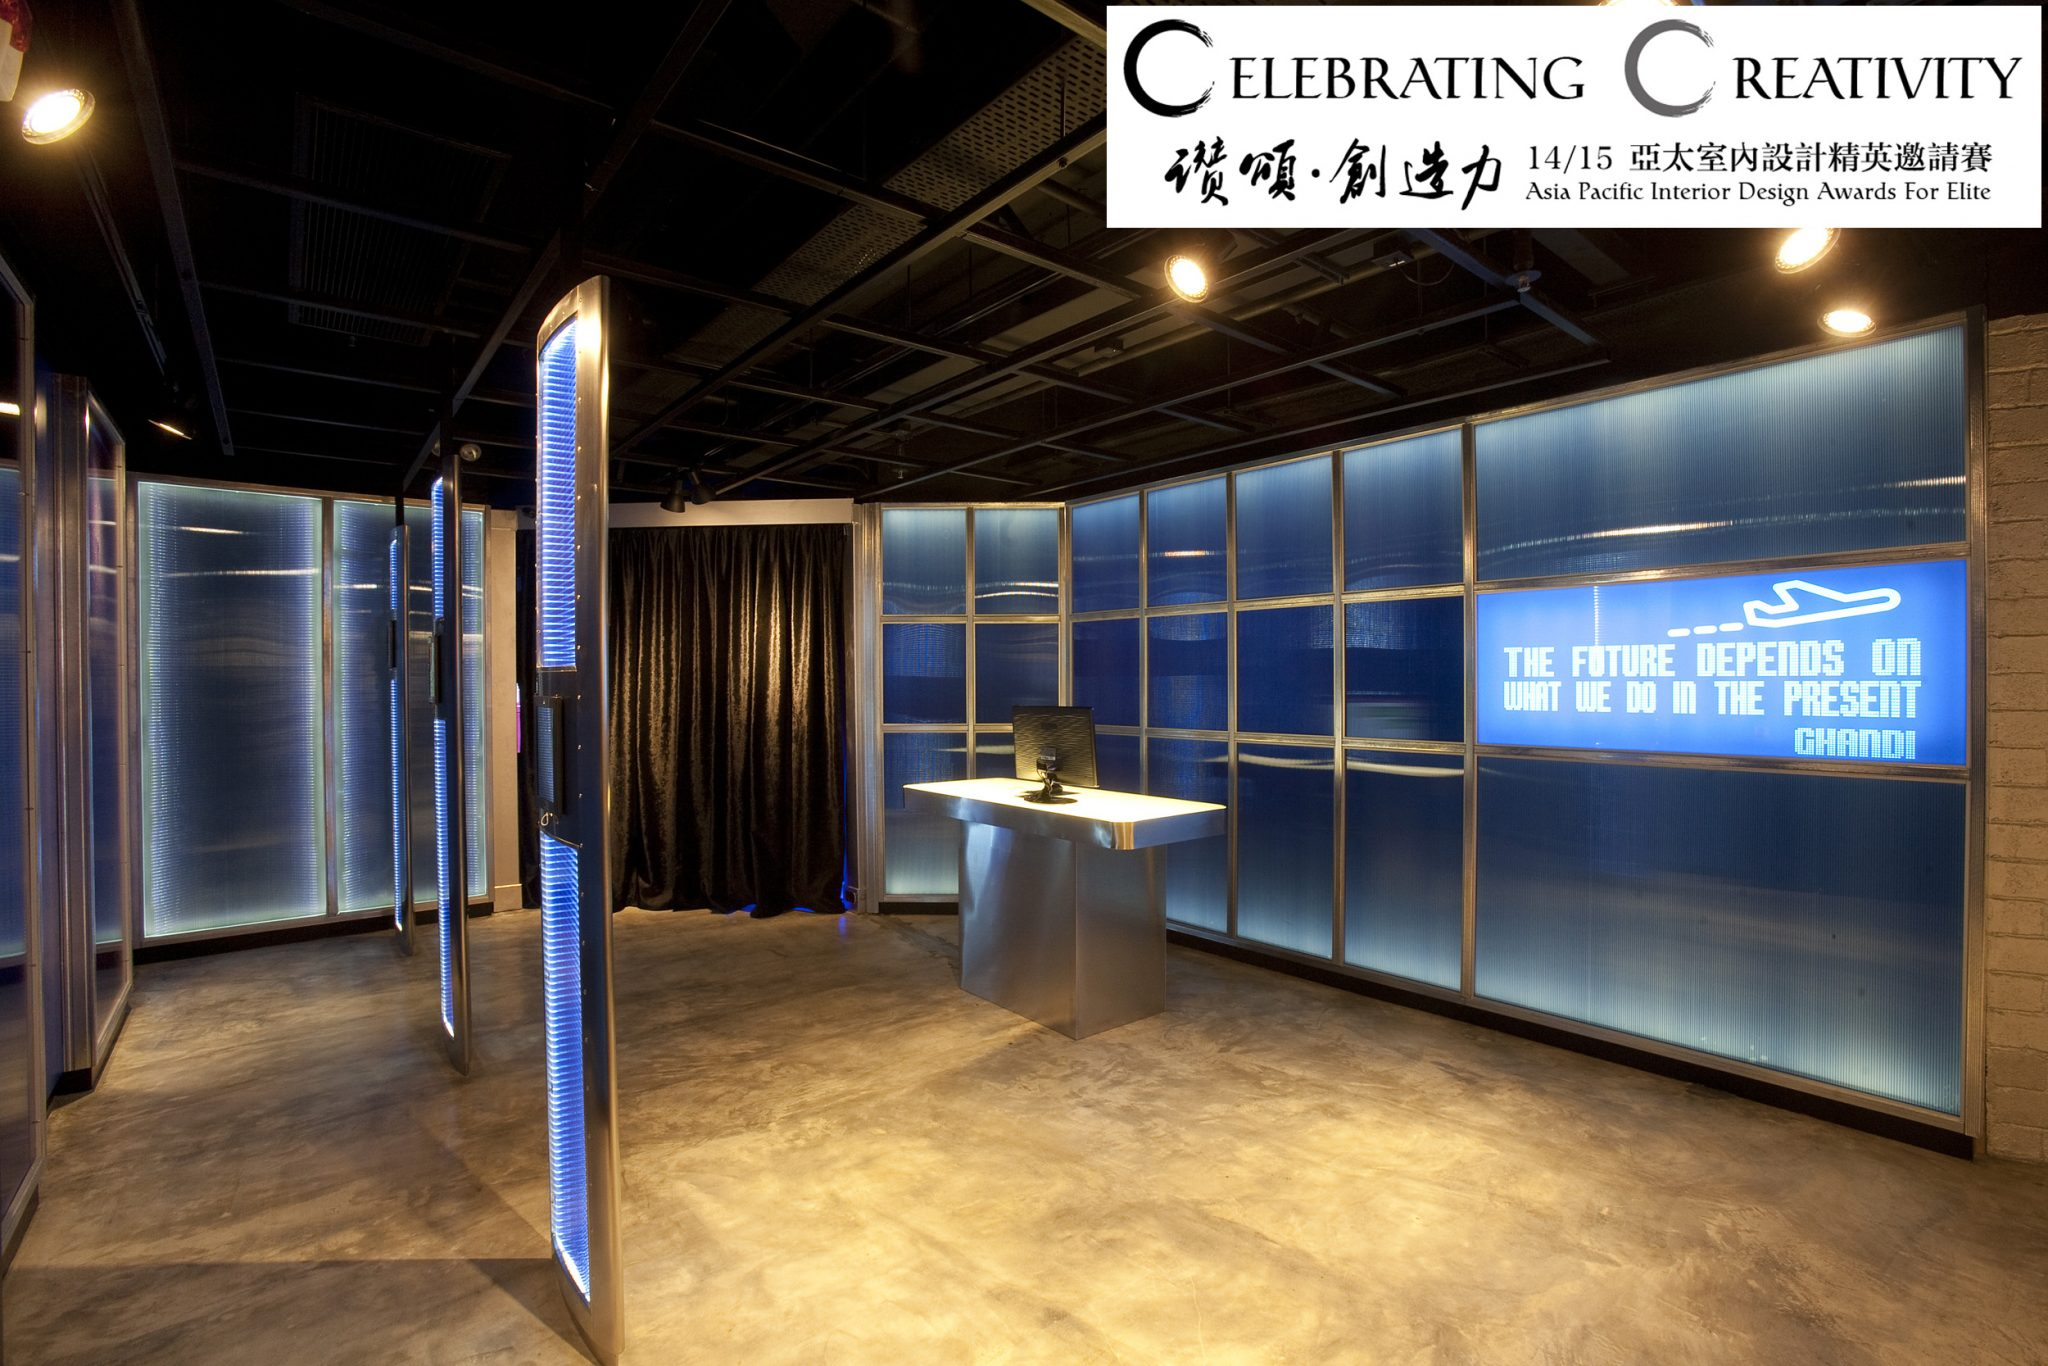 Jockey Club Life Journey Centre – Winning Prize, APDC Asia Pacific Interior Design Awards for Elite 2014/15